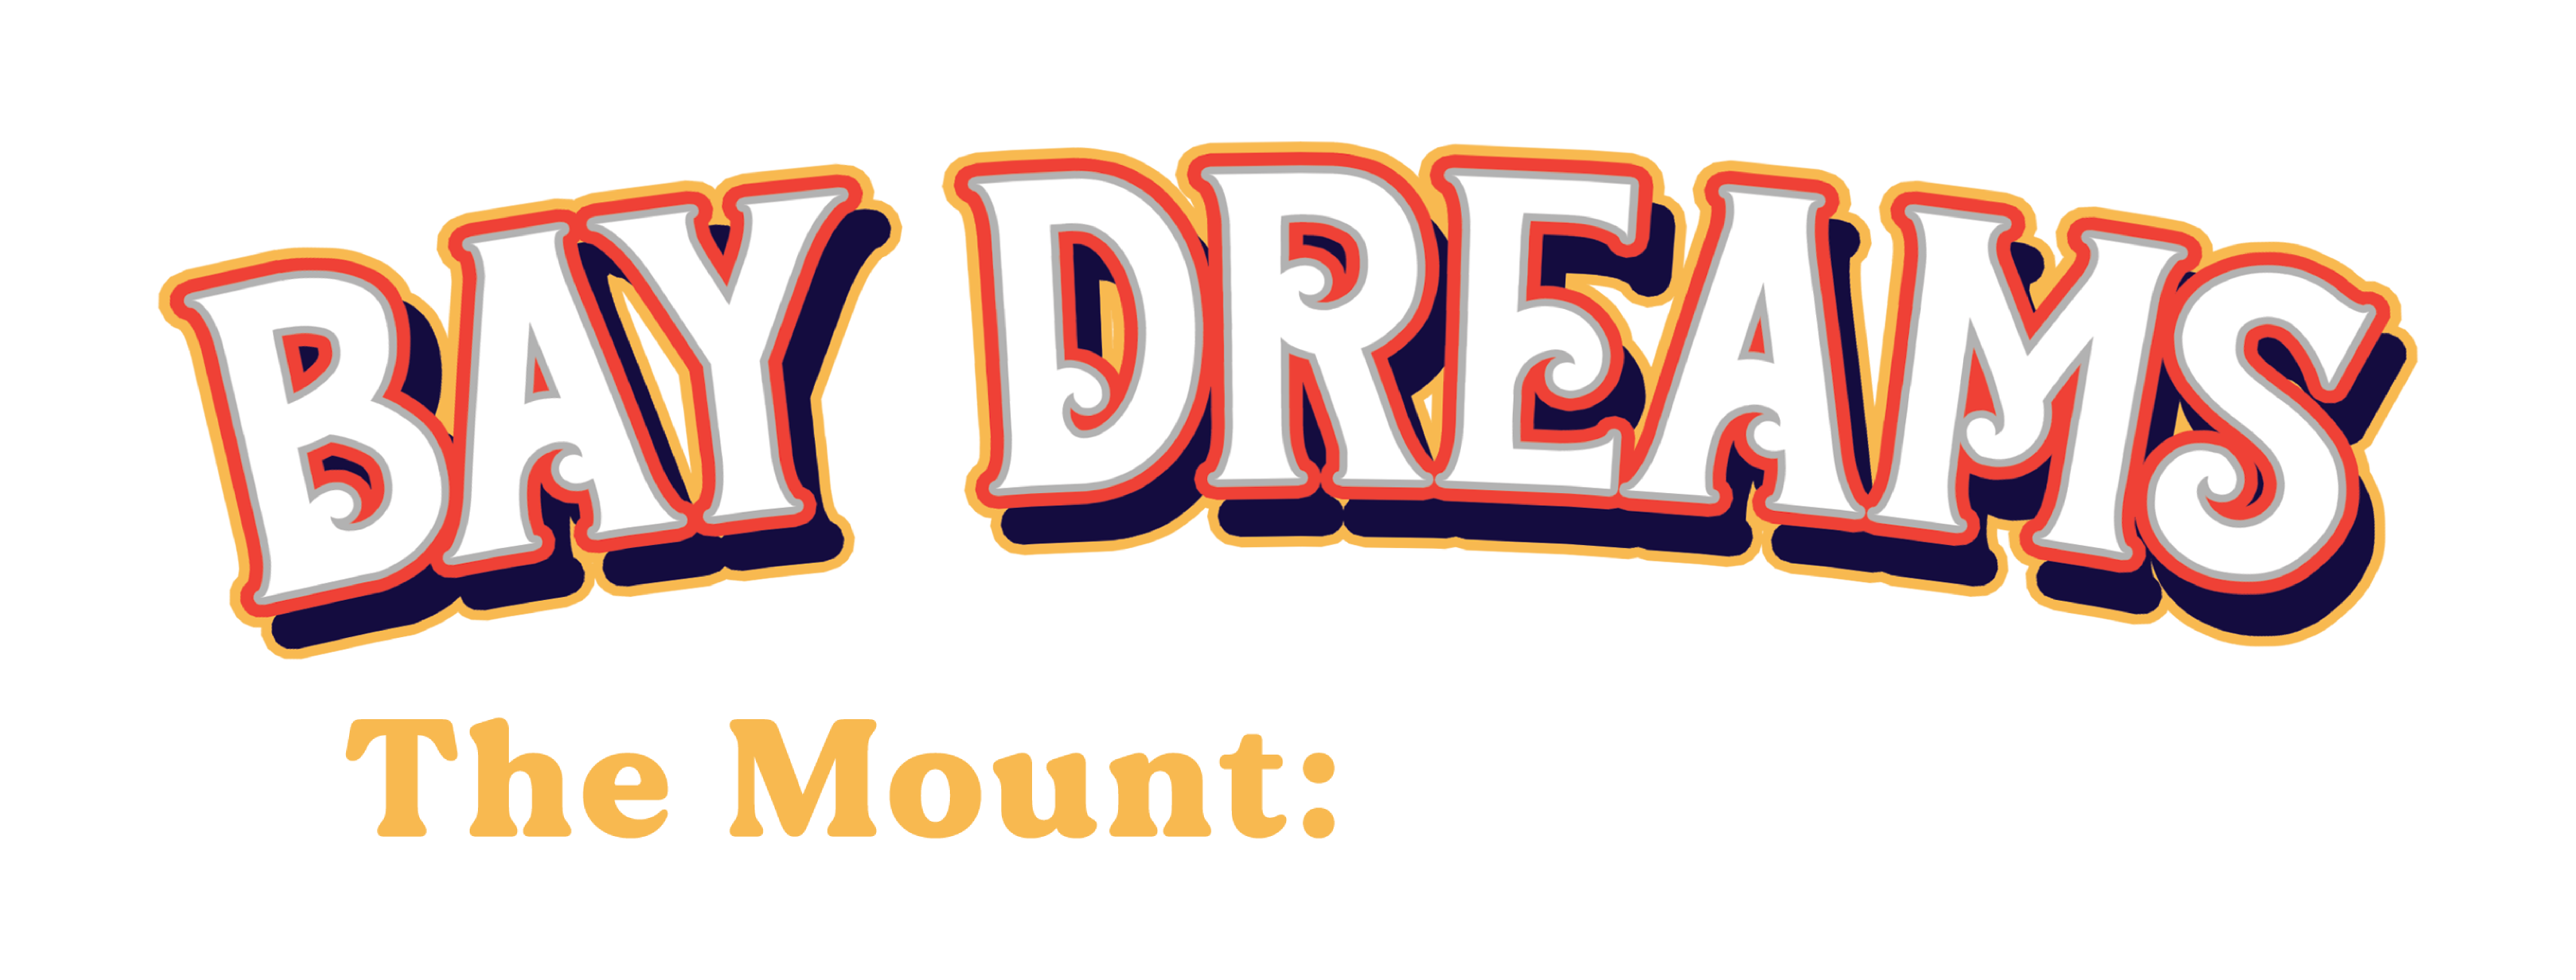 Tickets for BAY DREAMS FESTIVAL 2021 - The Mount in Tauranga from Ticketspace